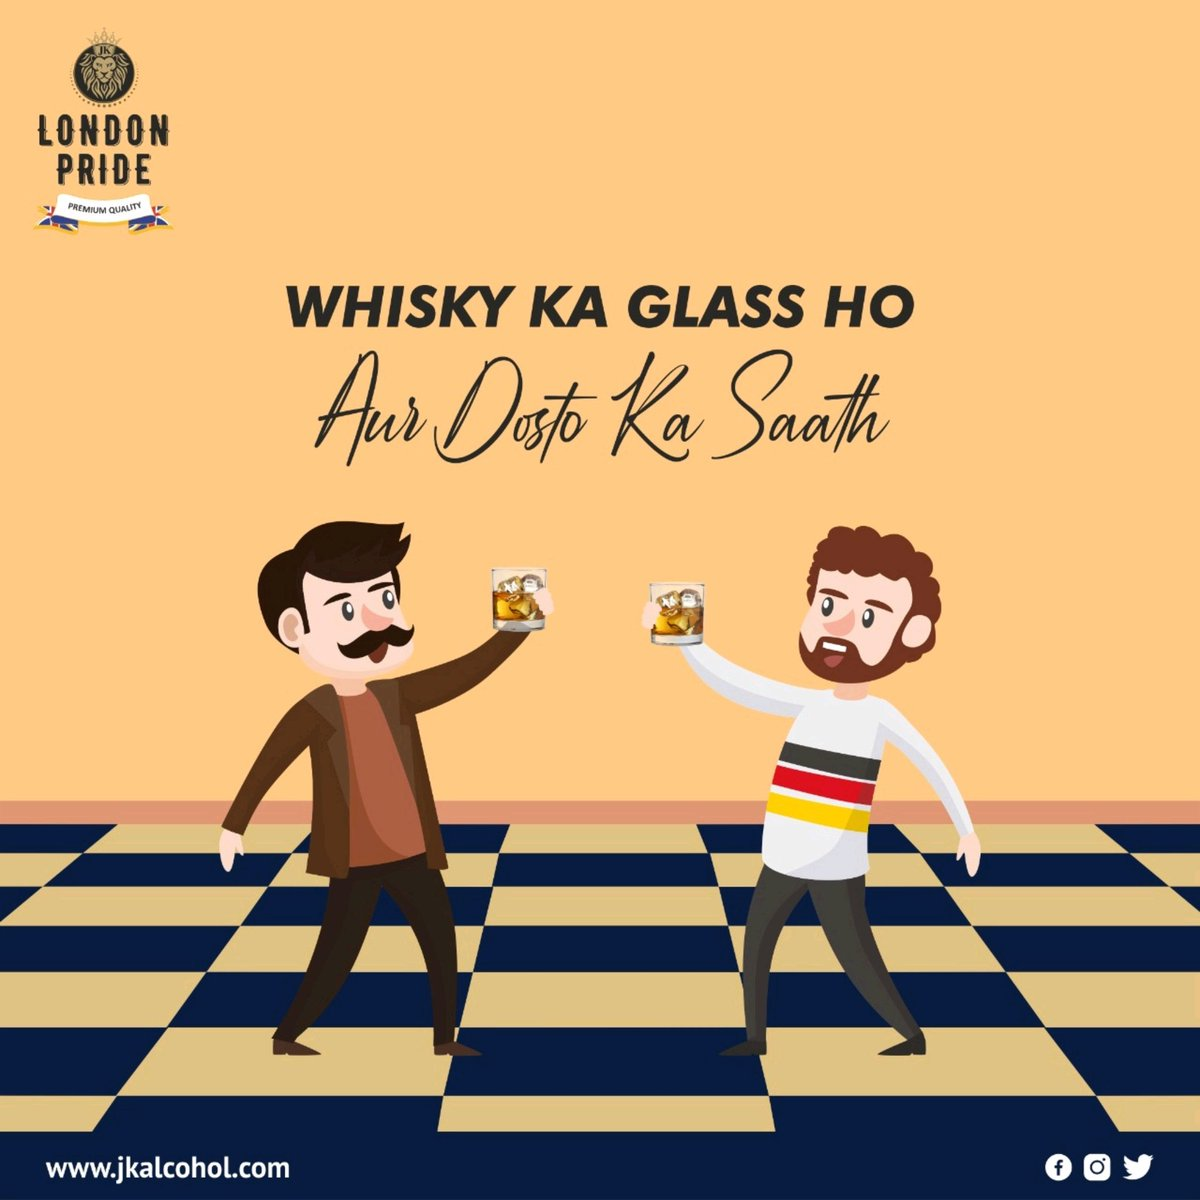 Invite your friends over and enjoy the IPL match with a bottle of your favorite drinks! From delicious cocktails to downing it neat, there's many options for you! . #jkalcohol #Jkgroup #JkEnterprises #londonpride #Londonreserve #whisky #vodka #rum #premiumwhisky #indore #gwalior https://t.co/QHH5BAGbES